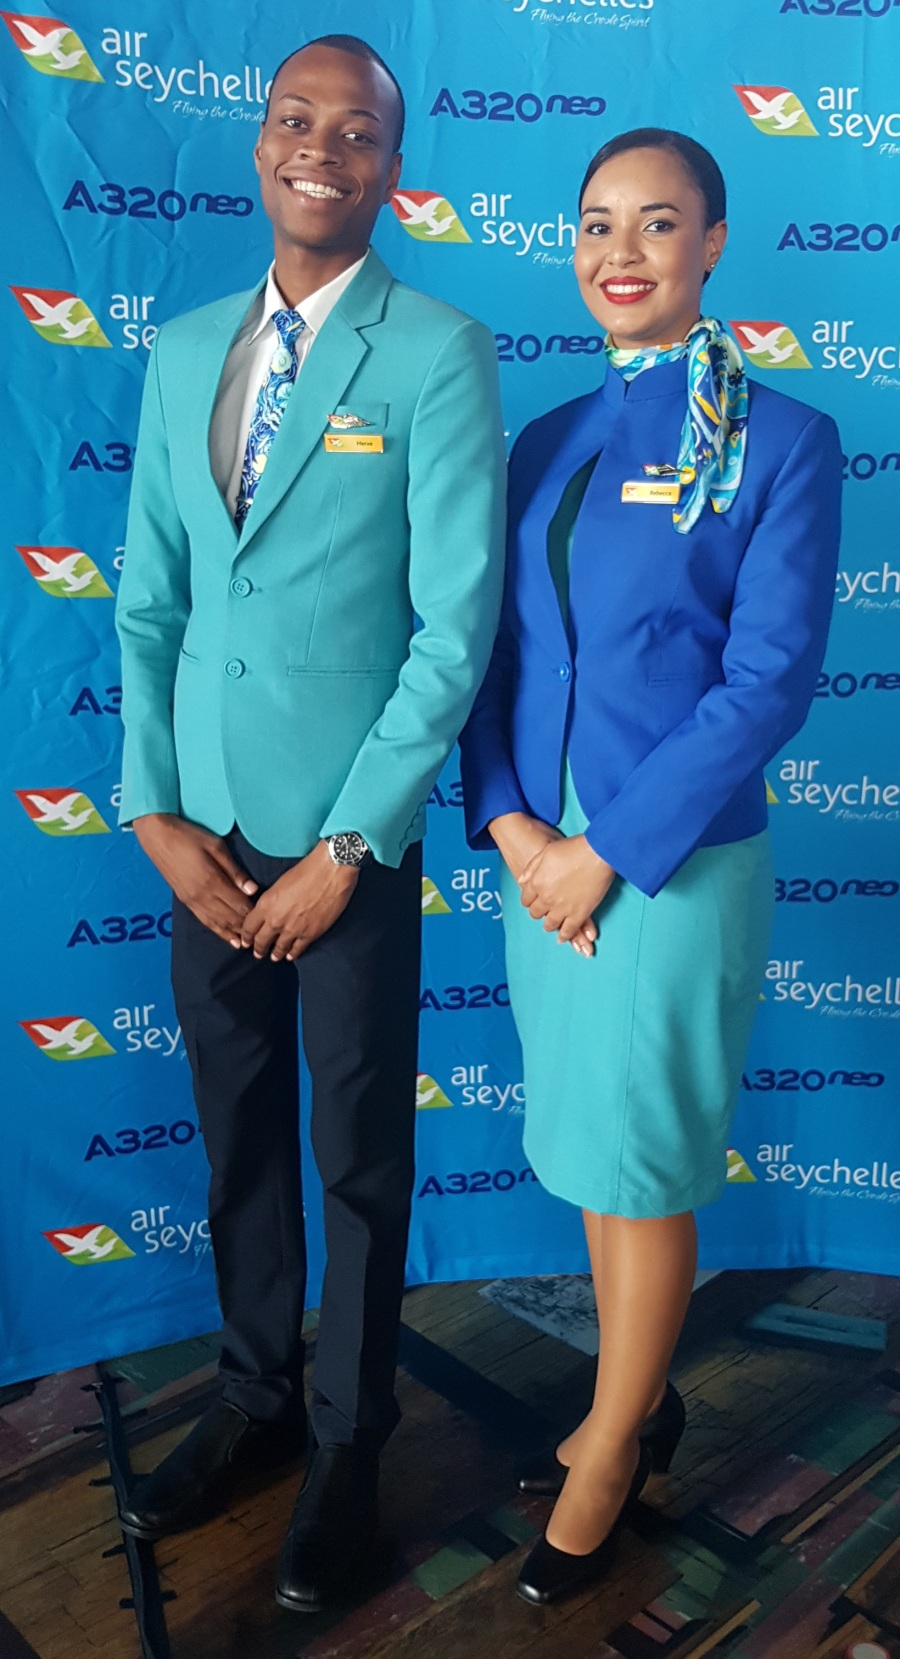 New Cabin Crew Uniform for the ladies and gents